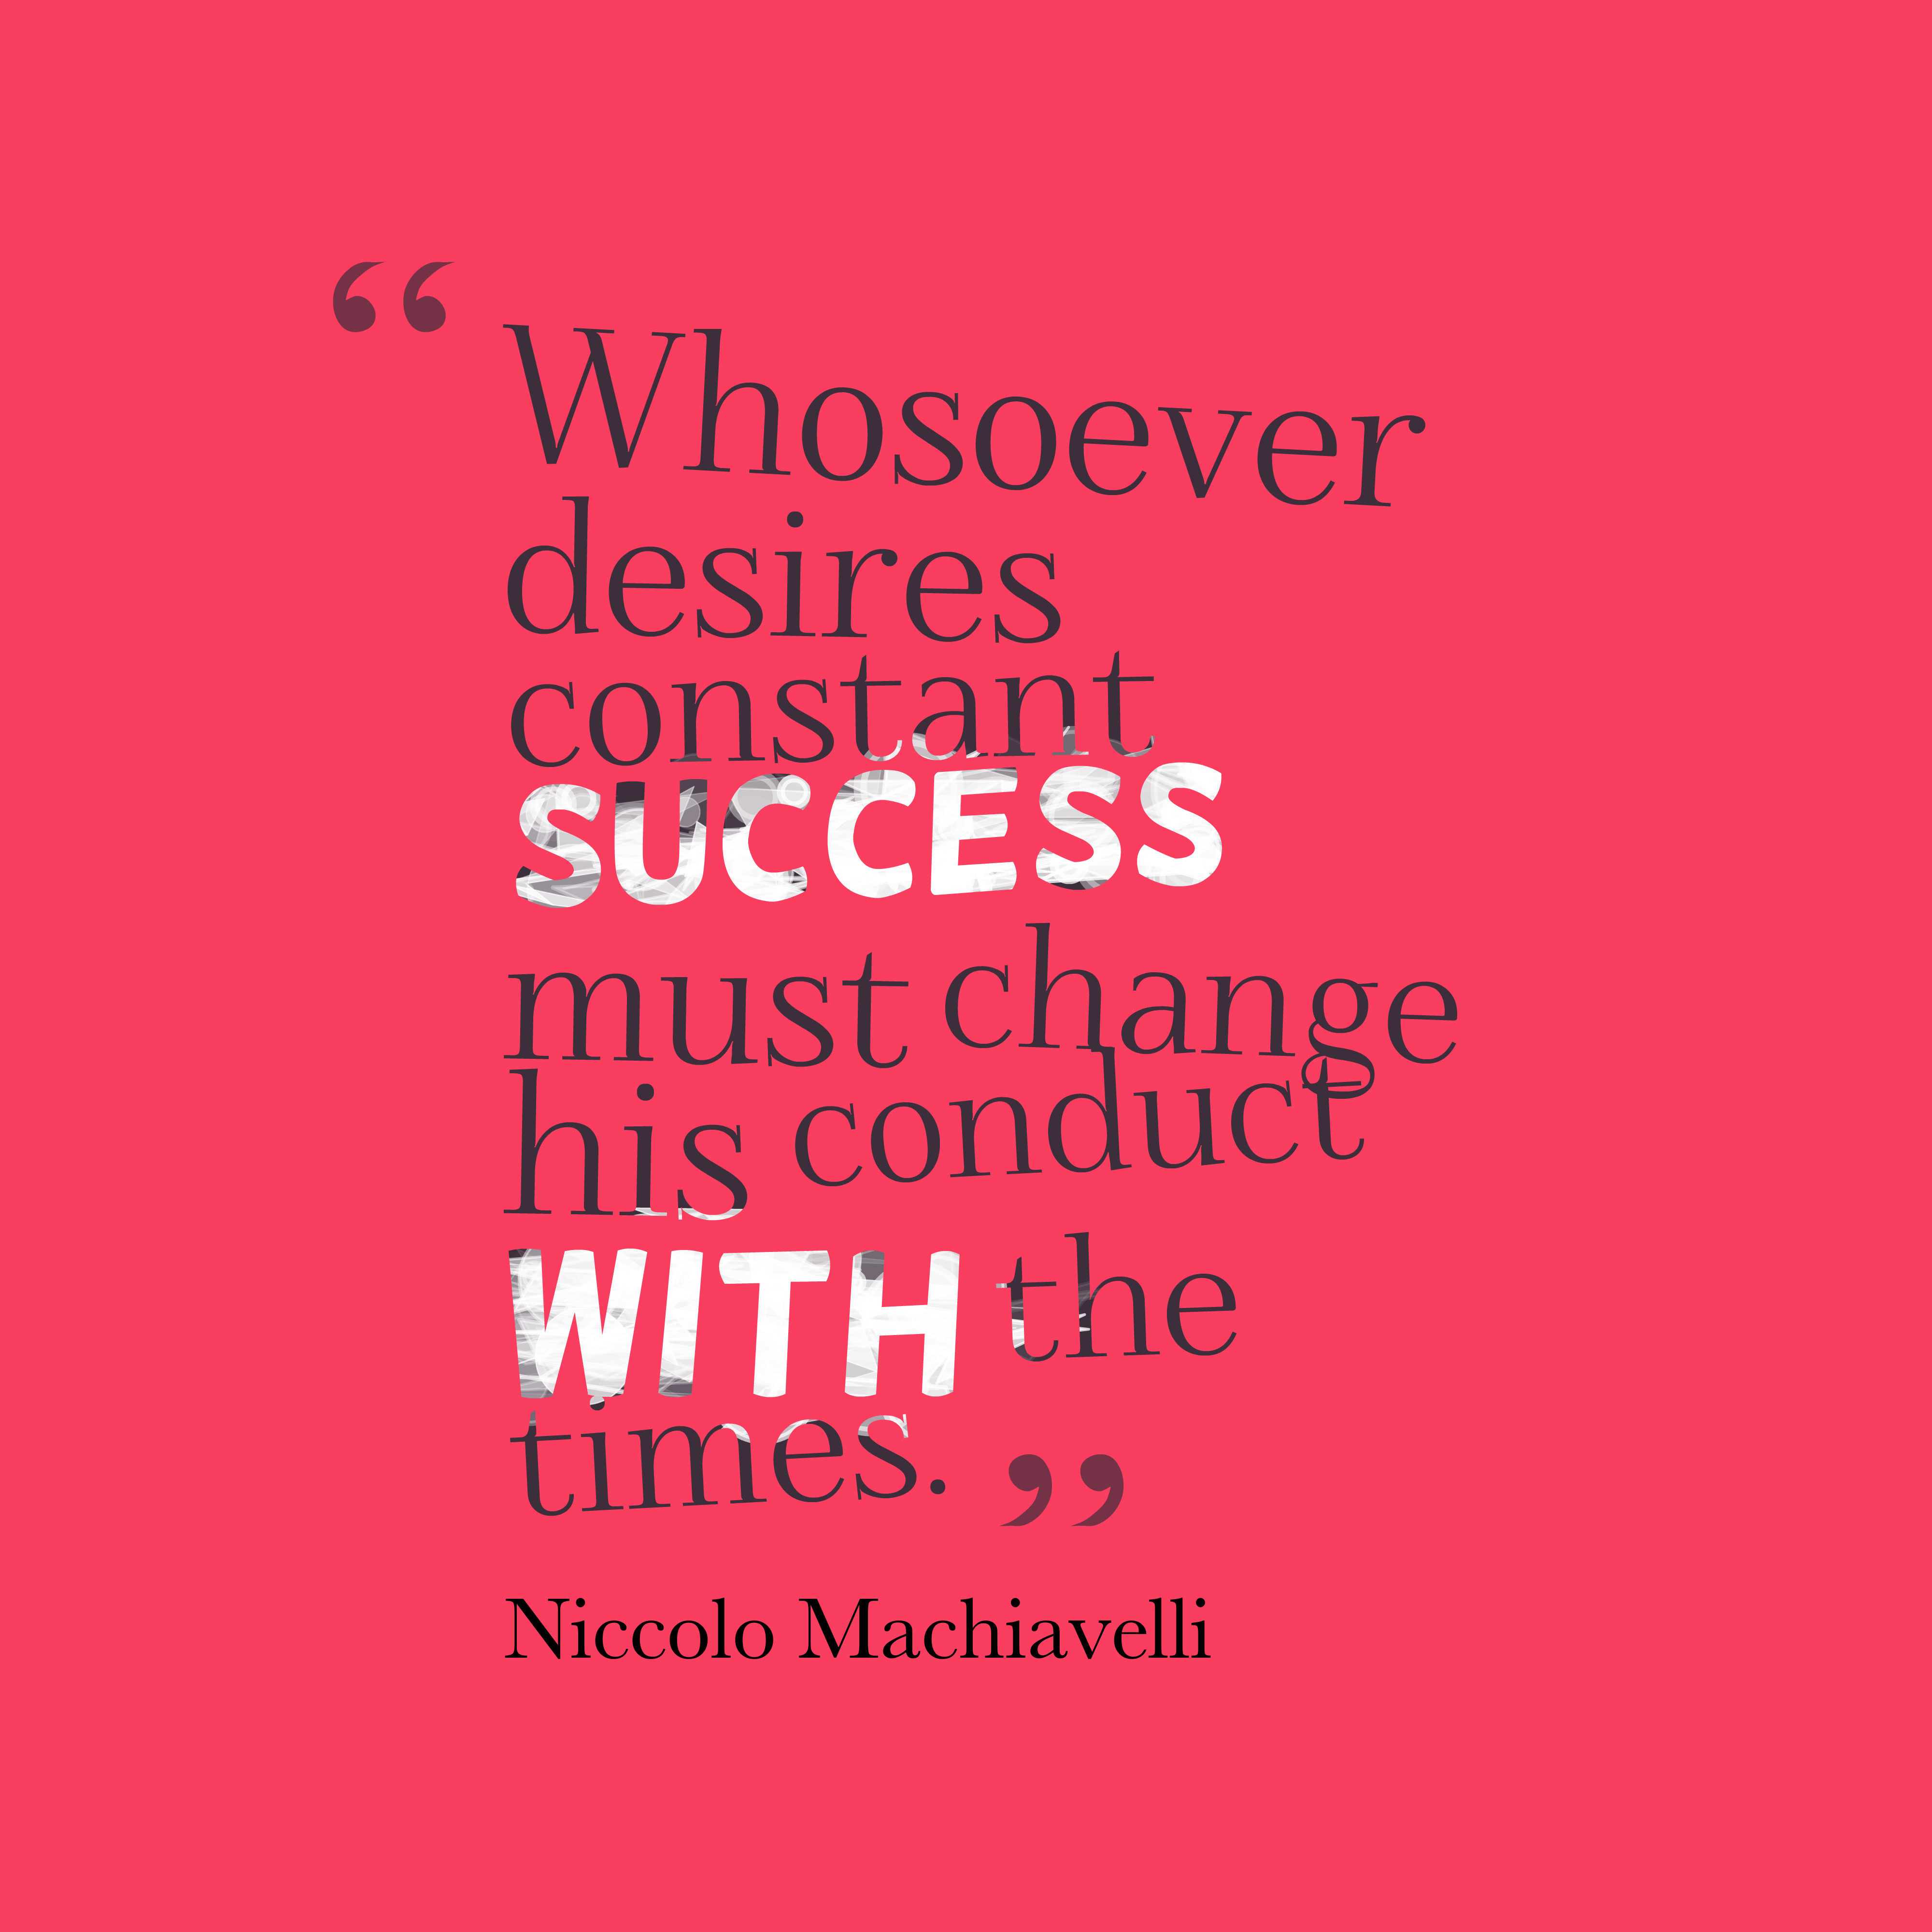 describing niccol machiavelli as a great leader Italian statesman, philosopher and writer niccolo machiavelli  machiavelli's  guide to power was revolutionary in that it described how powerful people   machiavelli believed that a strong leader like borgia was just what florence  needed to.